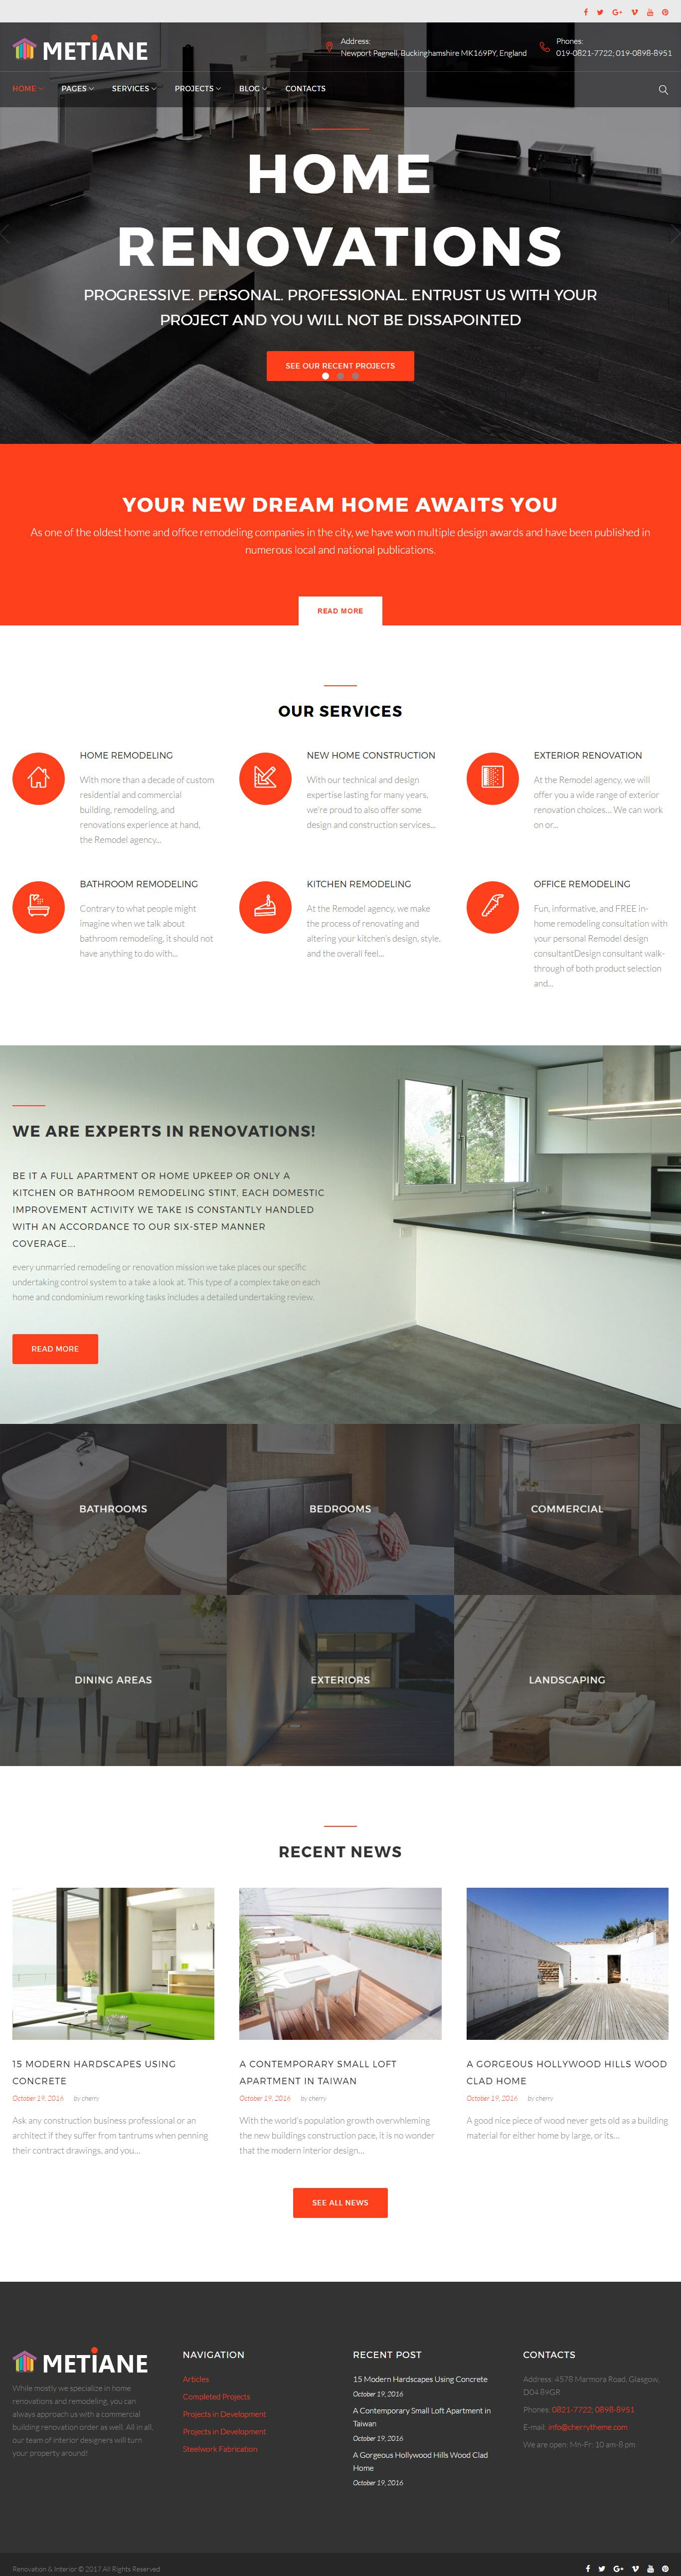 Metiane - Interior Design Wordpress Theme Screenshot 3